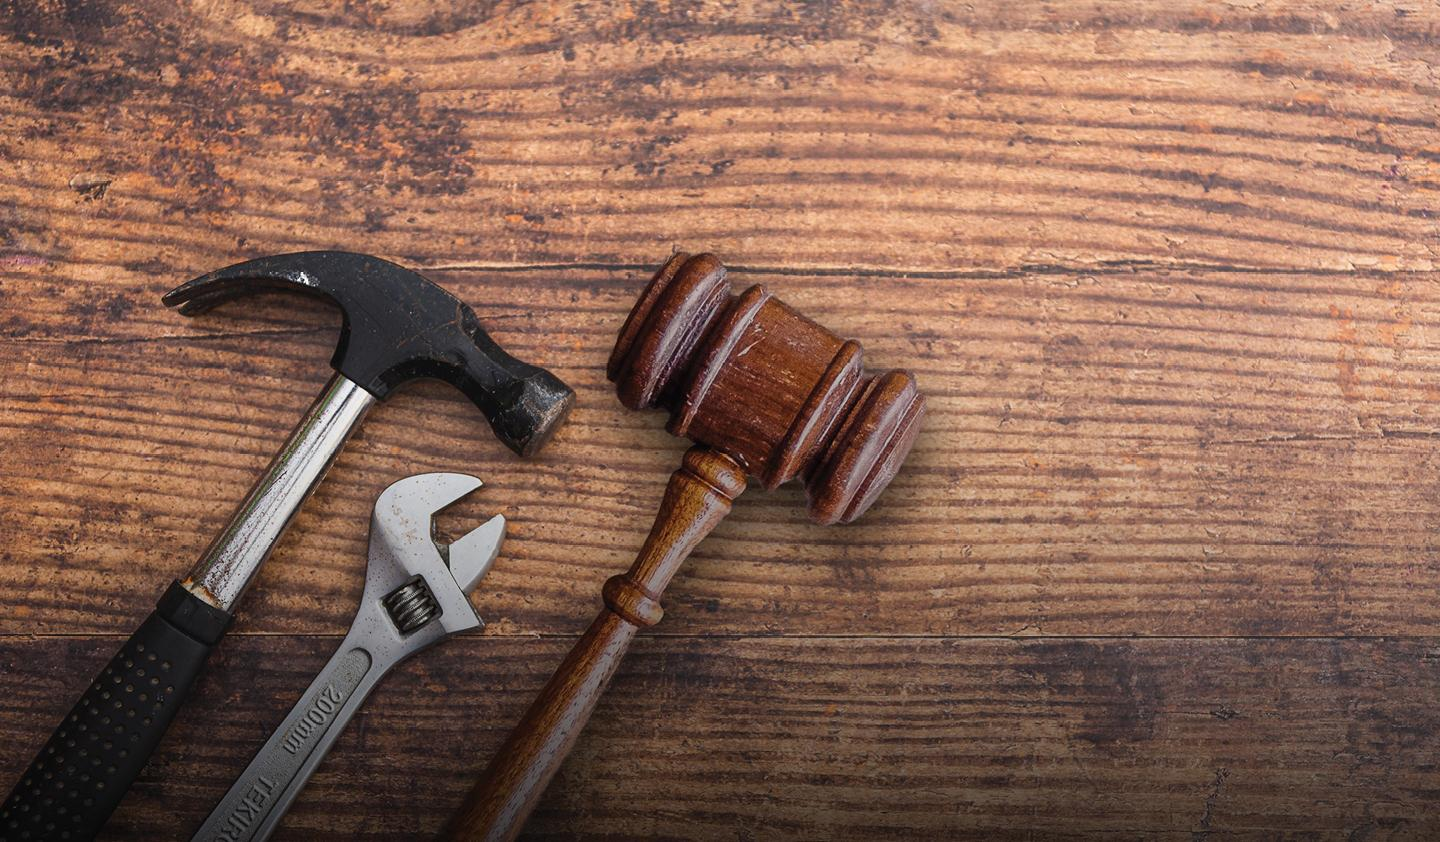 Hammer, wrench, and gavel on wooden surface